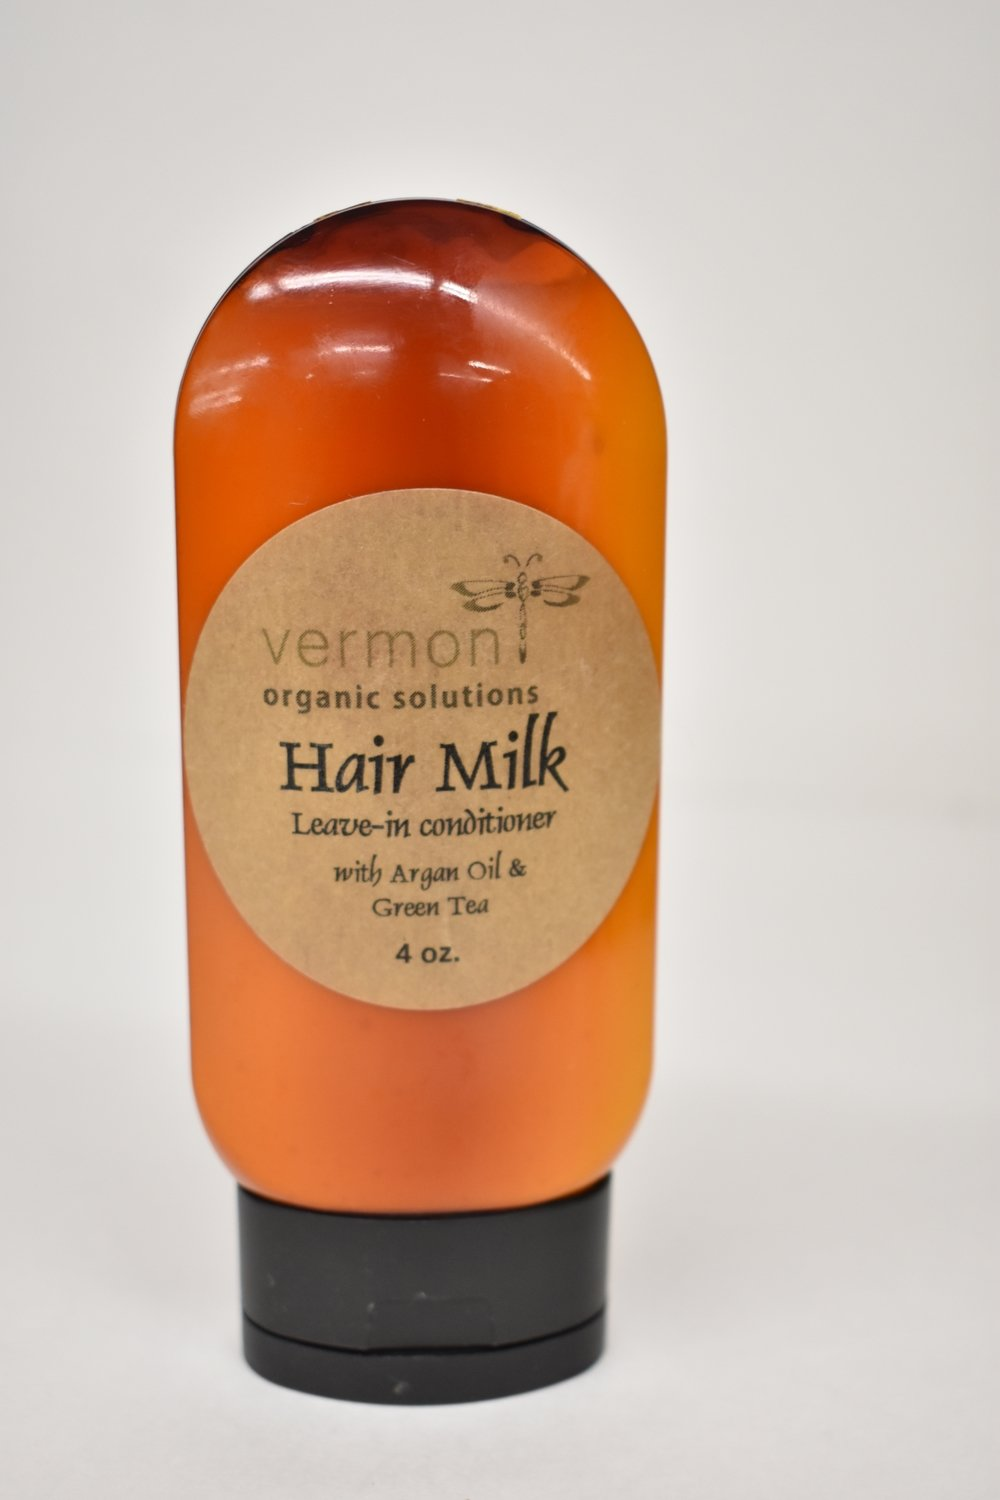 Vermont Organic Hair Milk with organ oil and green tea